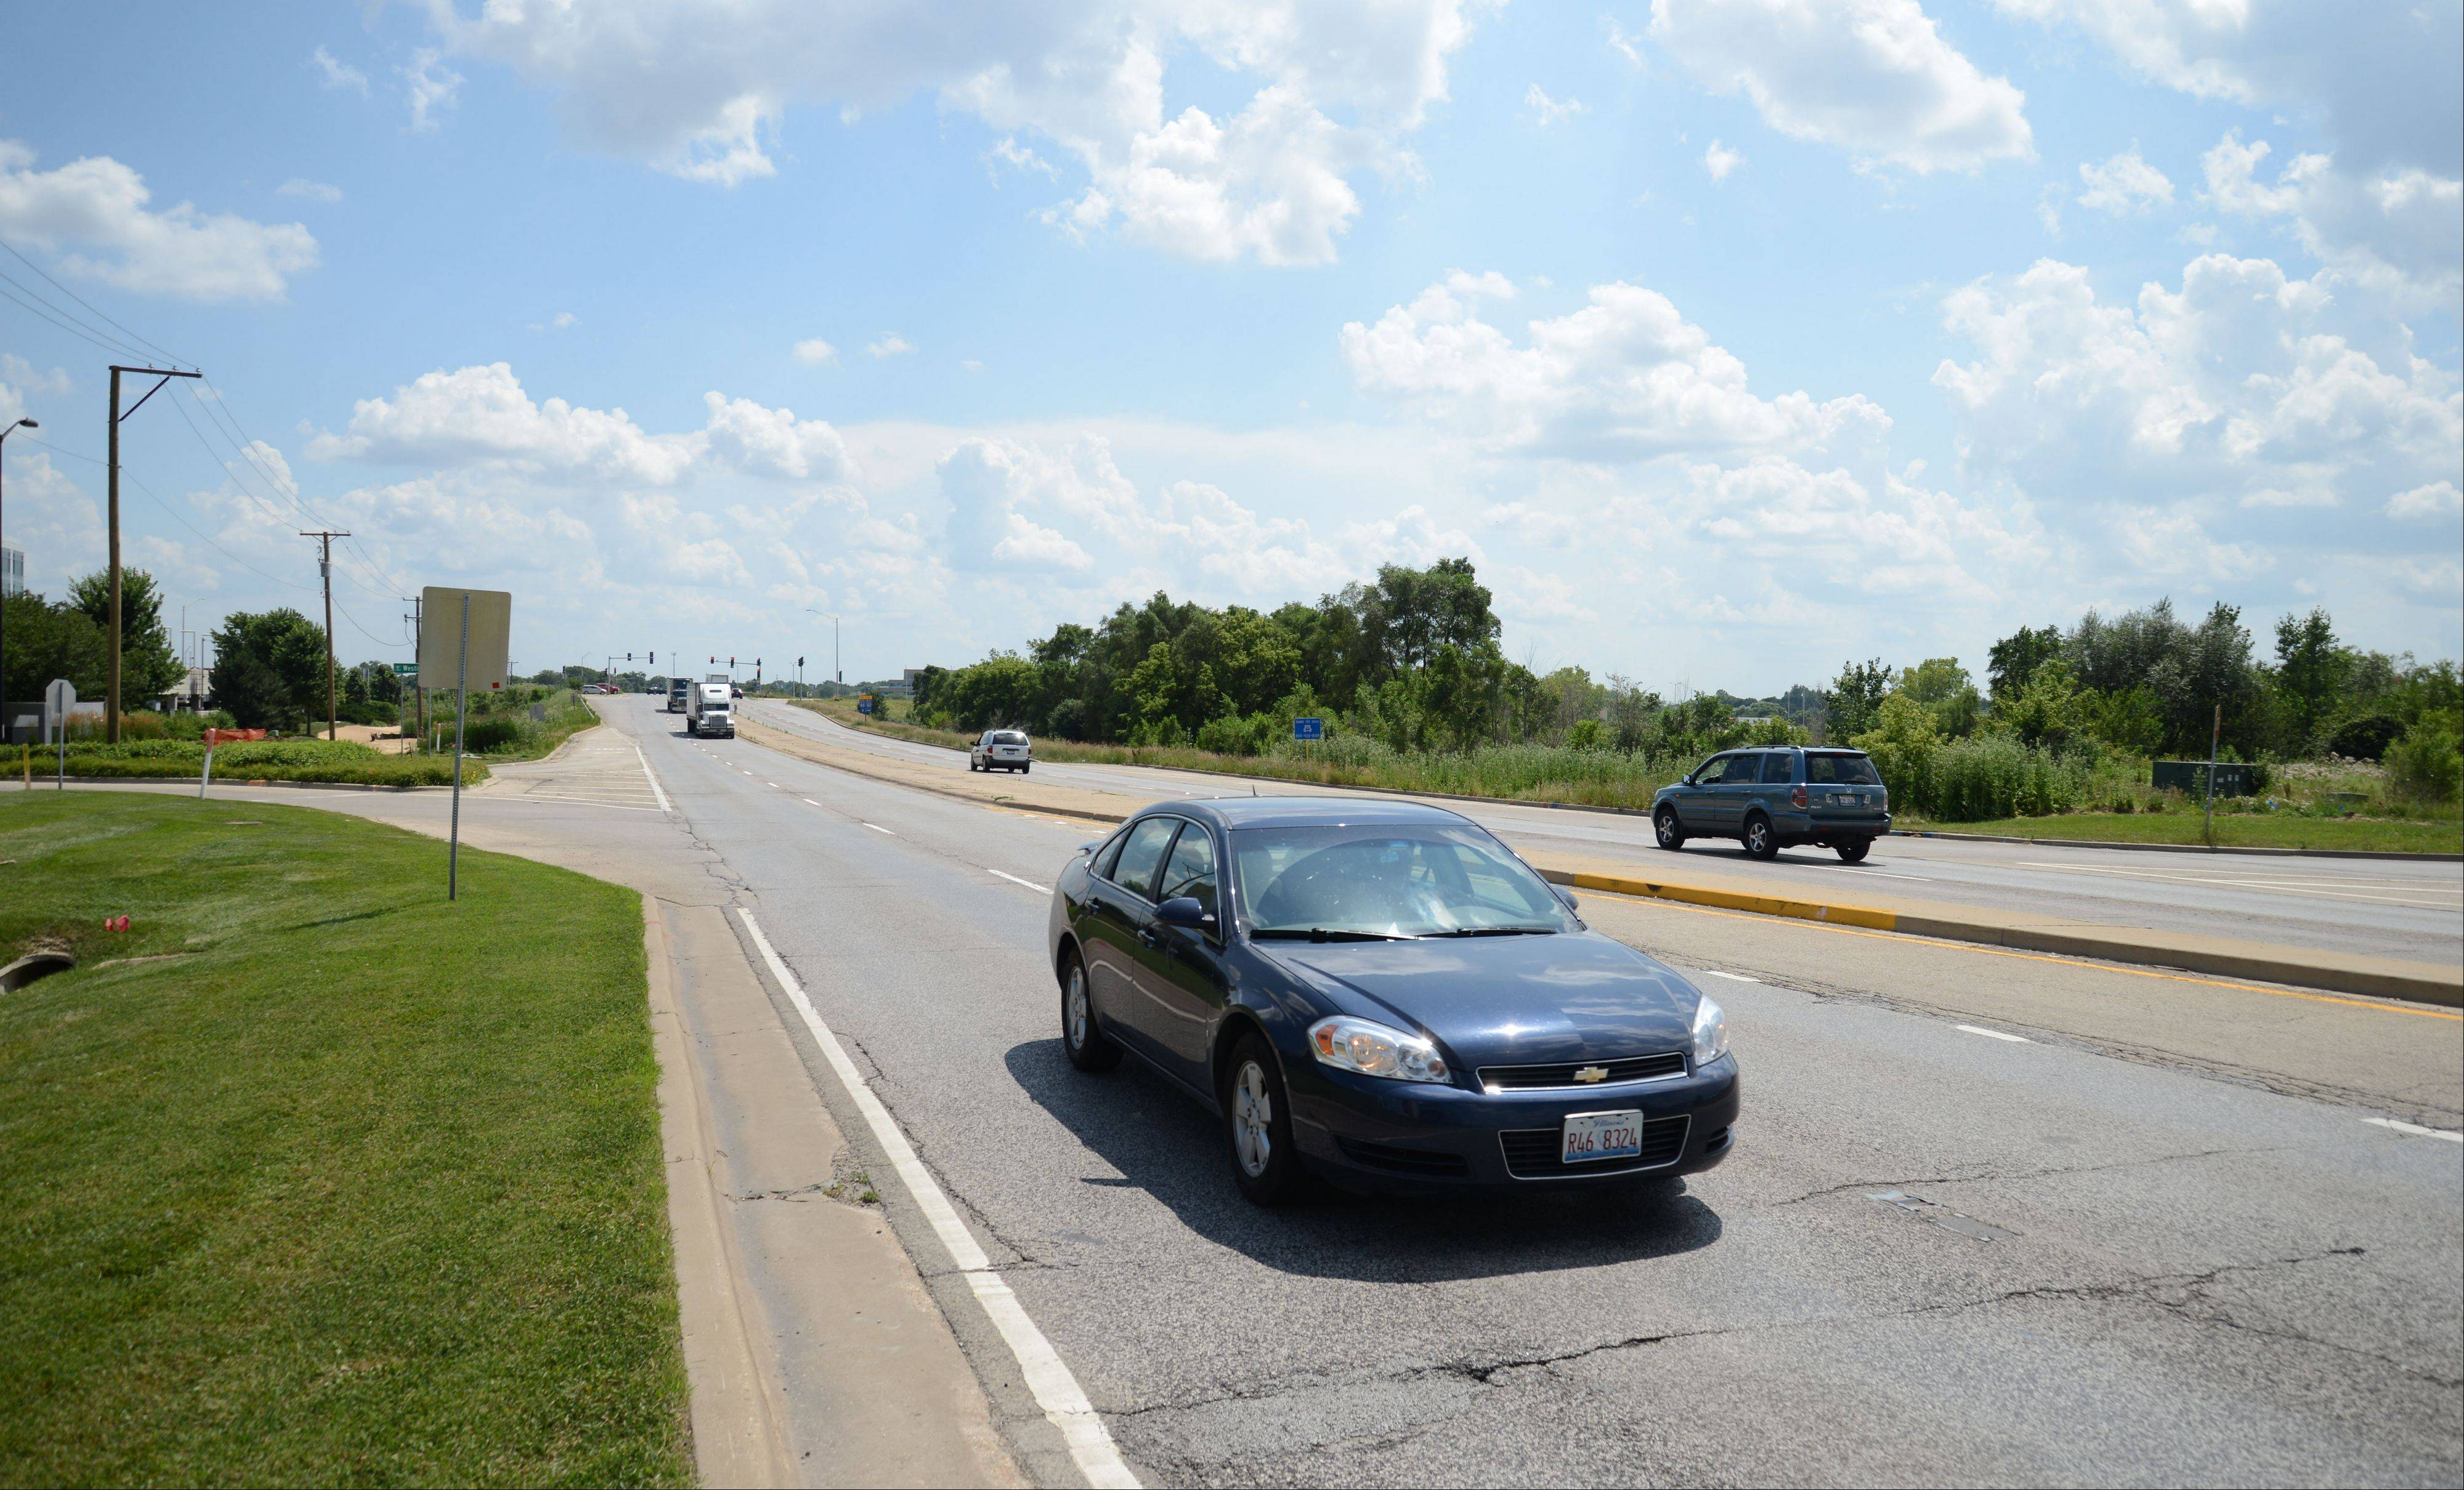 One of the first �diverging diamond� interchanges in the state will be built at Route 59 and I-88 in Naperville as part of a two-year nearly $90 million project to reconstruct a 3.5-mile stretch of the road between Ferry Road on the north and Aurora Avenue/New York Street on the south.